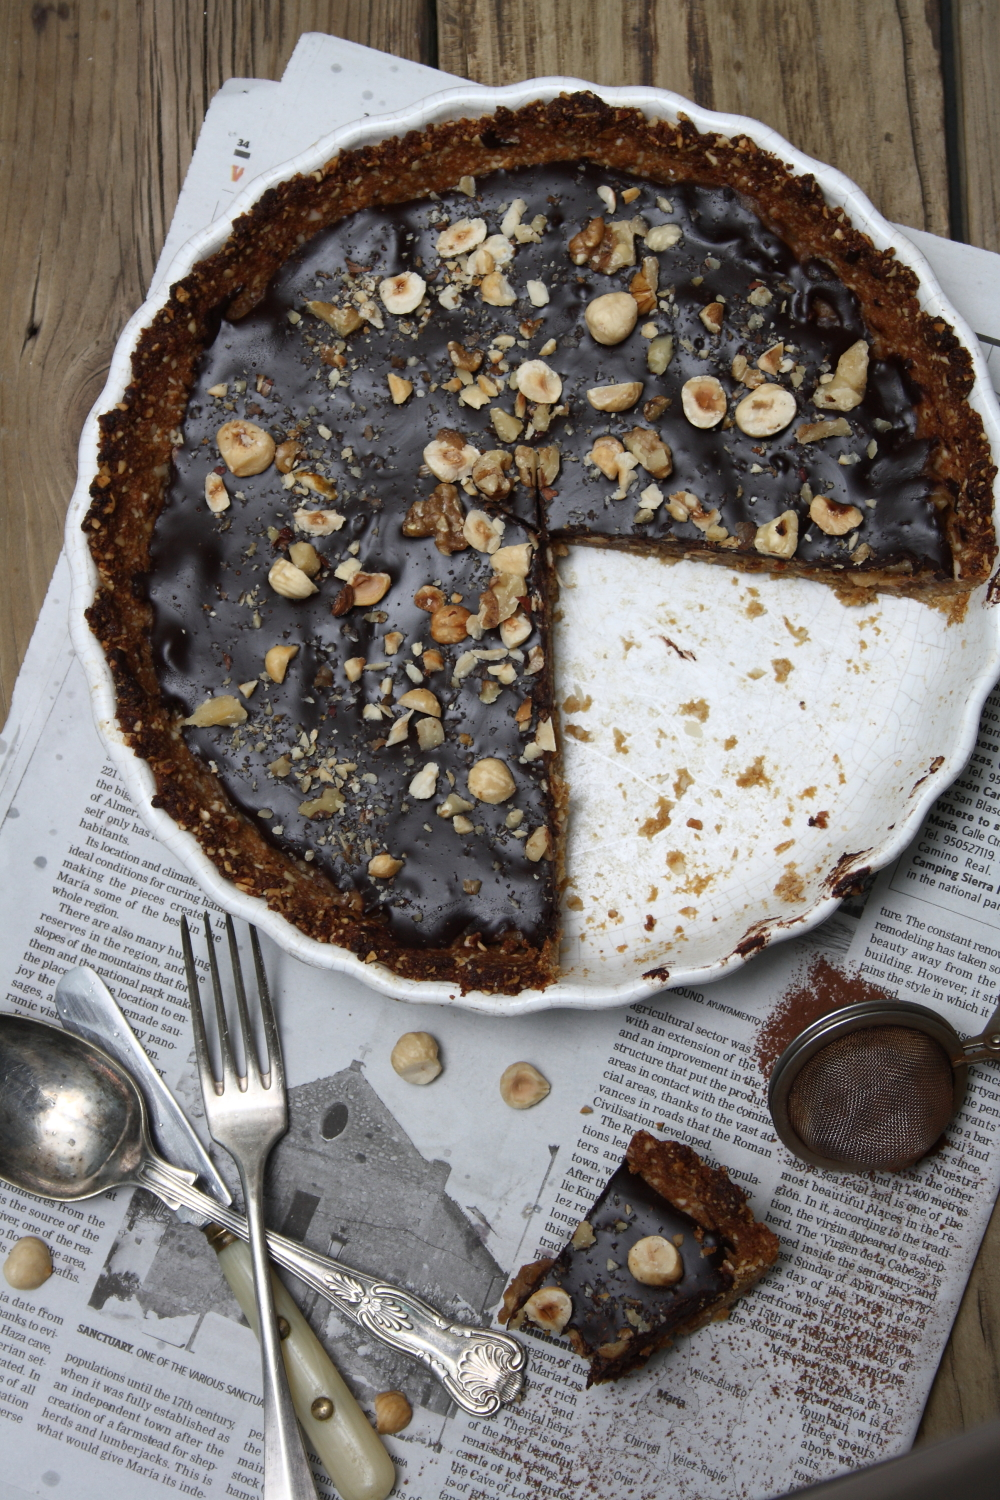 ... almonds chocolate hazelnut date caramel tart with ground almond crust